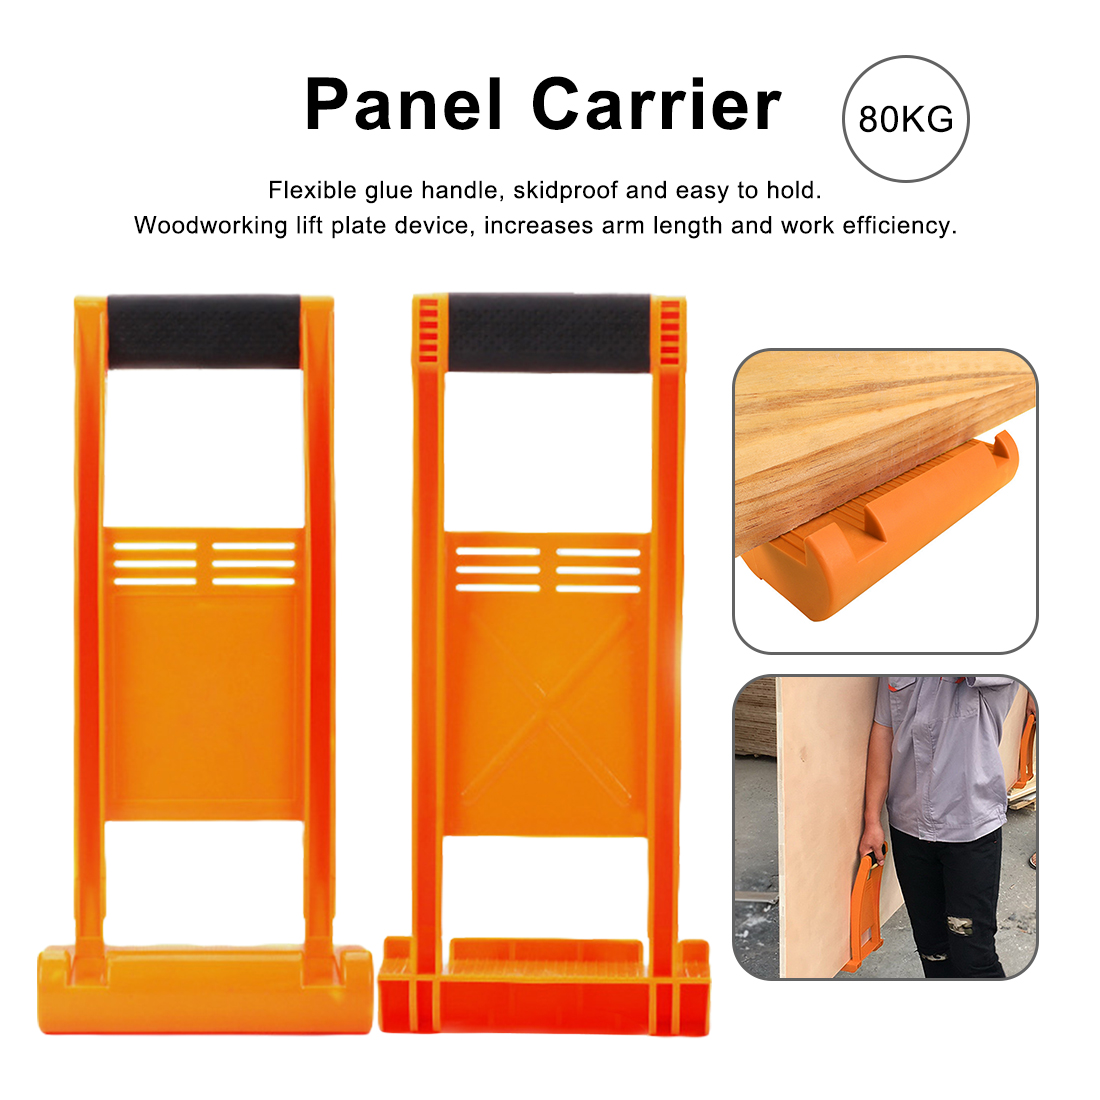 80KG ABS Load Conveyor drywall Panel Carrier Gripper Handle Carry Drywall Plywood Sheet